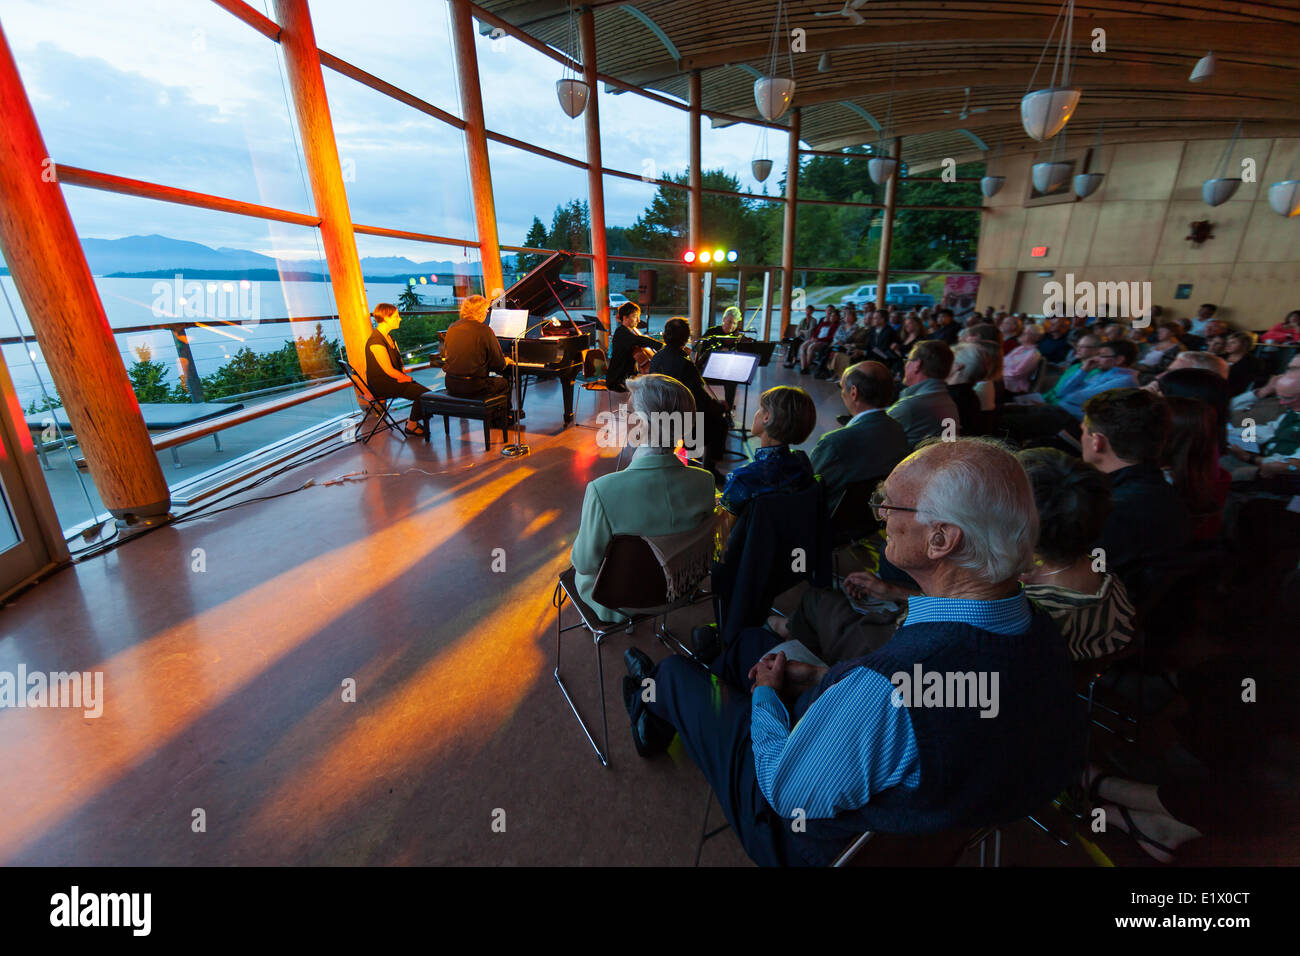 Guests listen to music at the annual Music By The Sea summer concert held in the spectacular Rix Centre overlooking - Stock Image